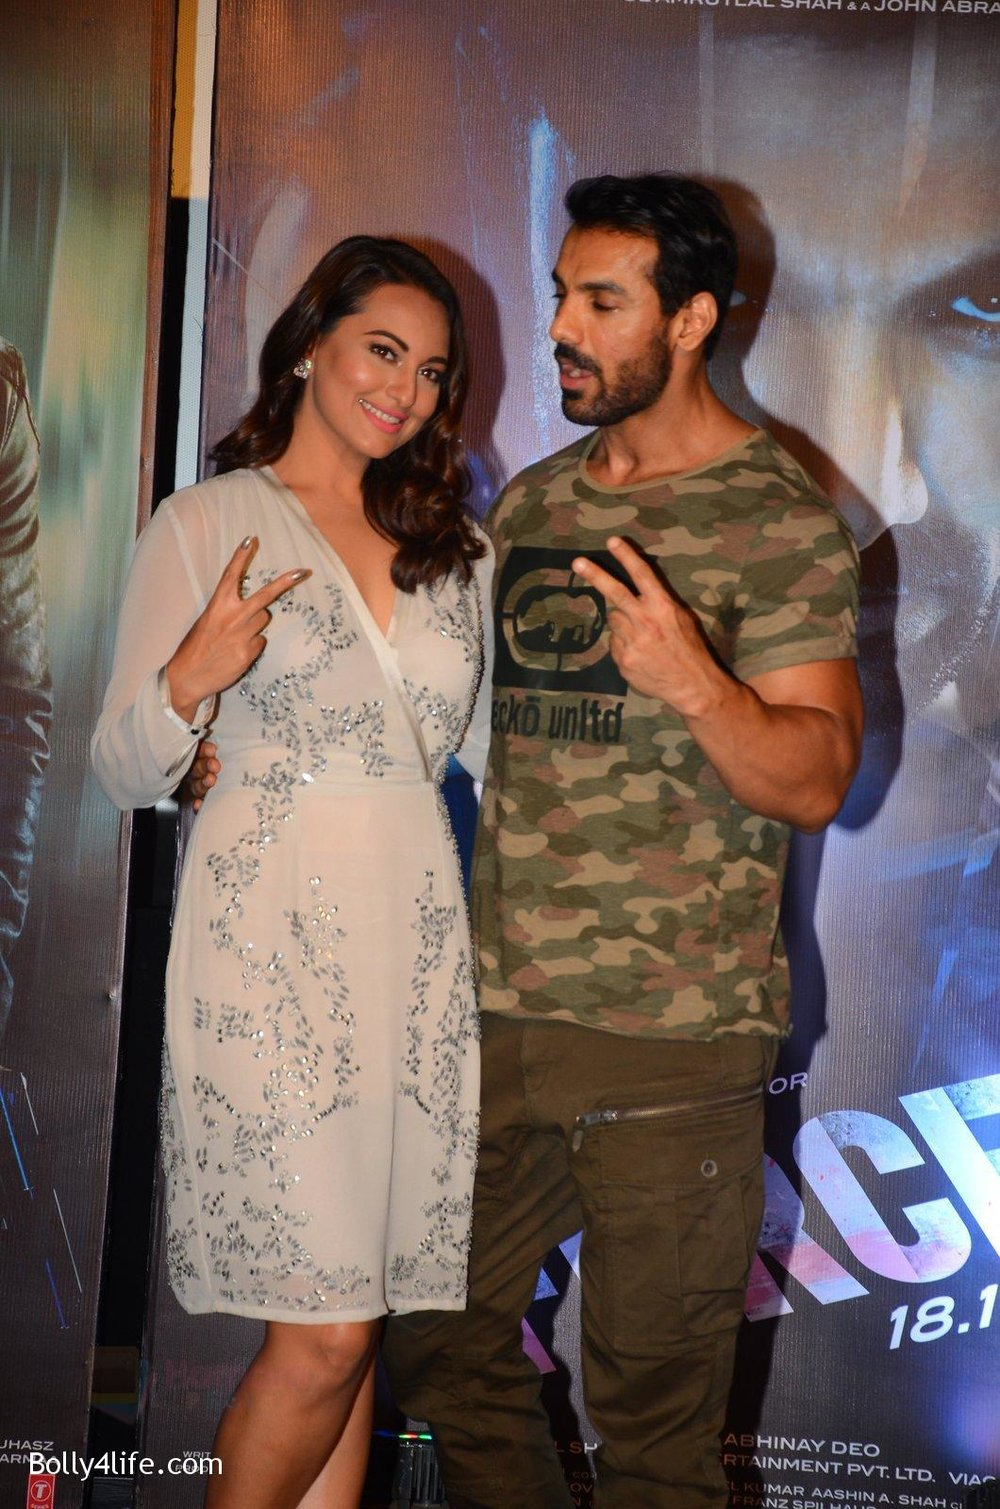 John-Abraham-Sonakshi-Sinha-at-Force-2-trailer-launch-in-Mumbai-on-29th-Sept-2016-224.jpg